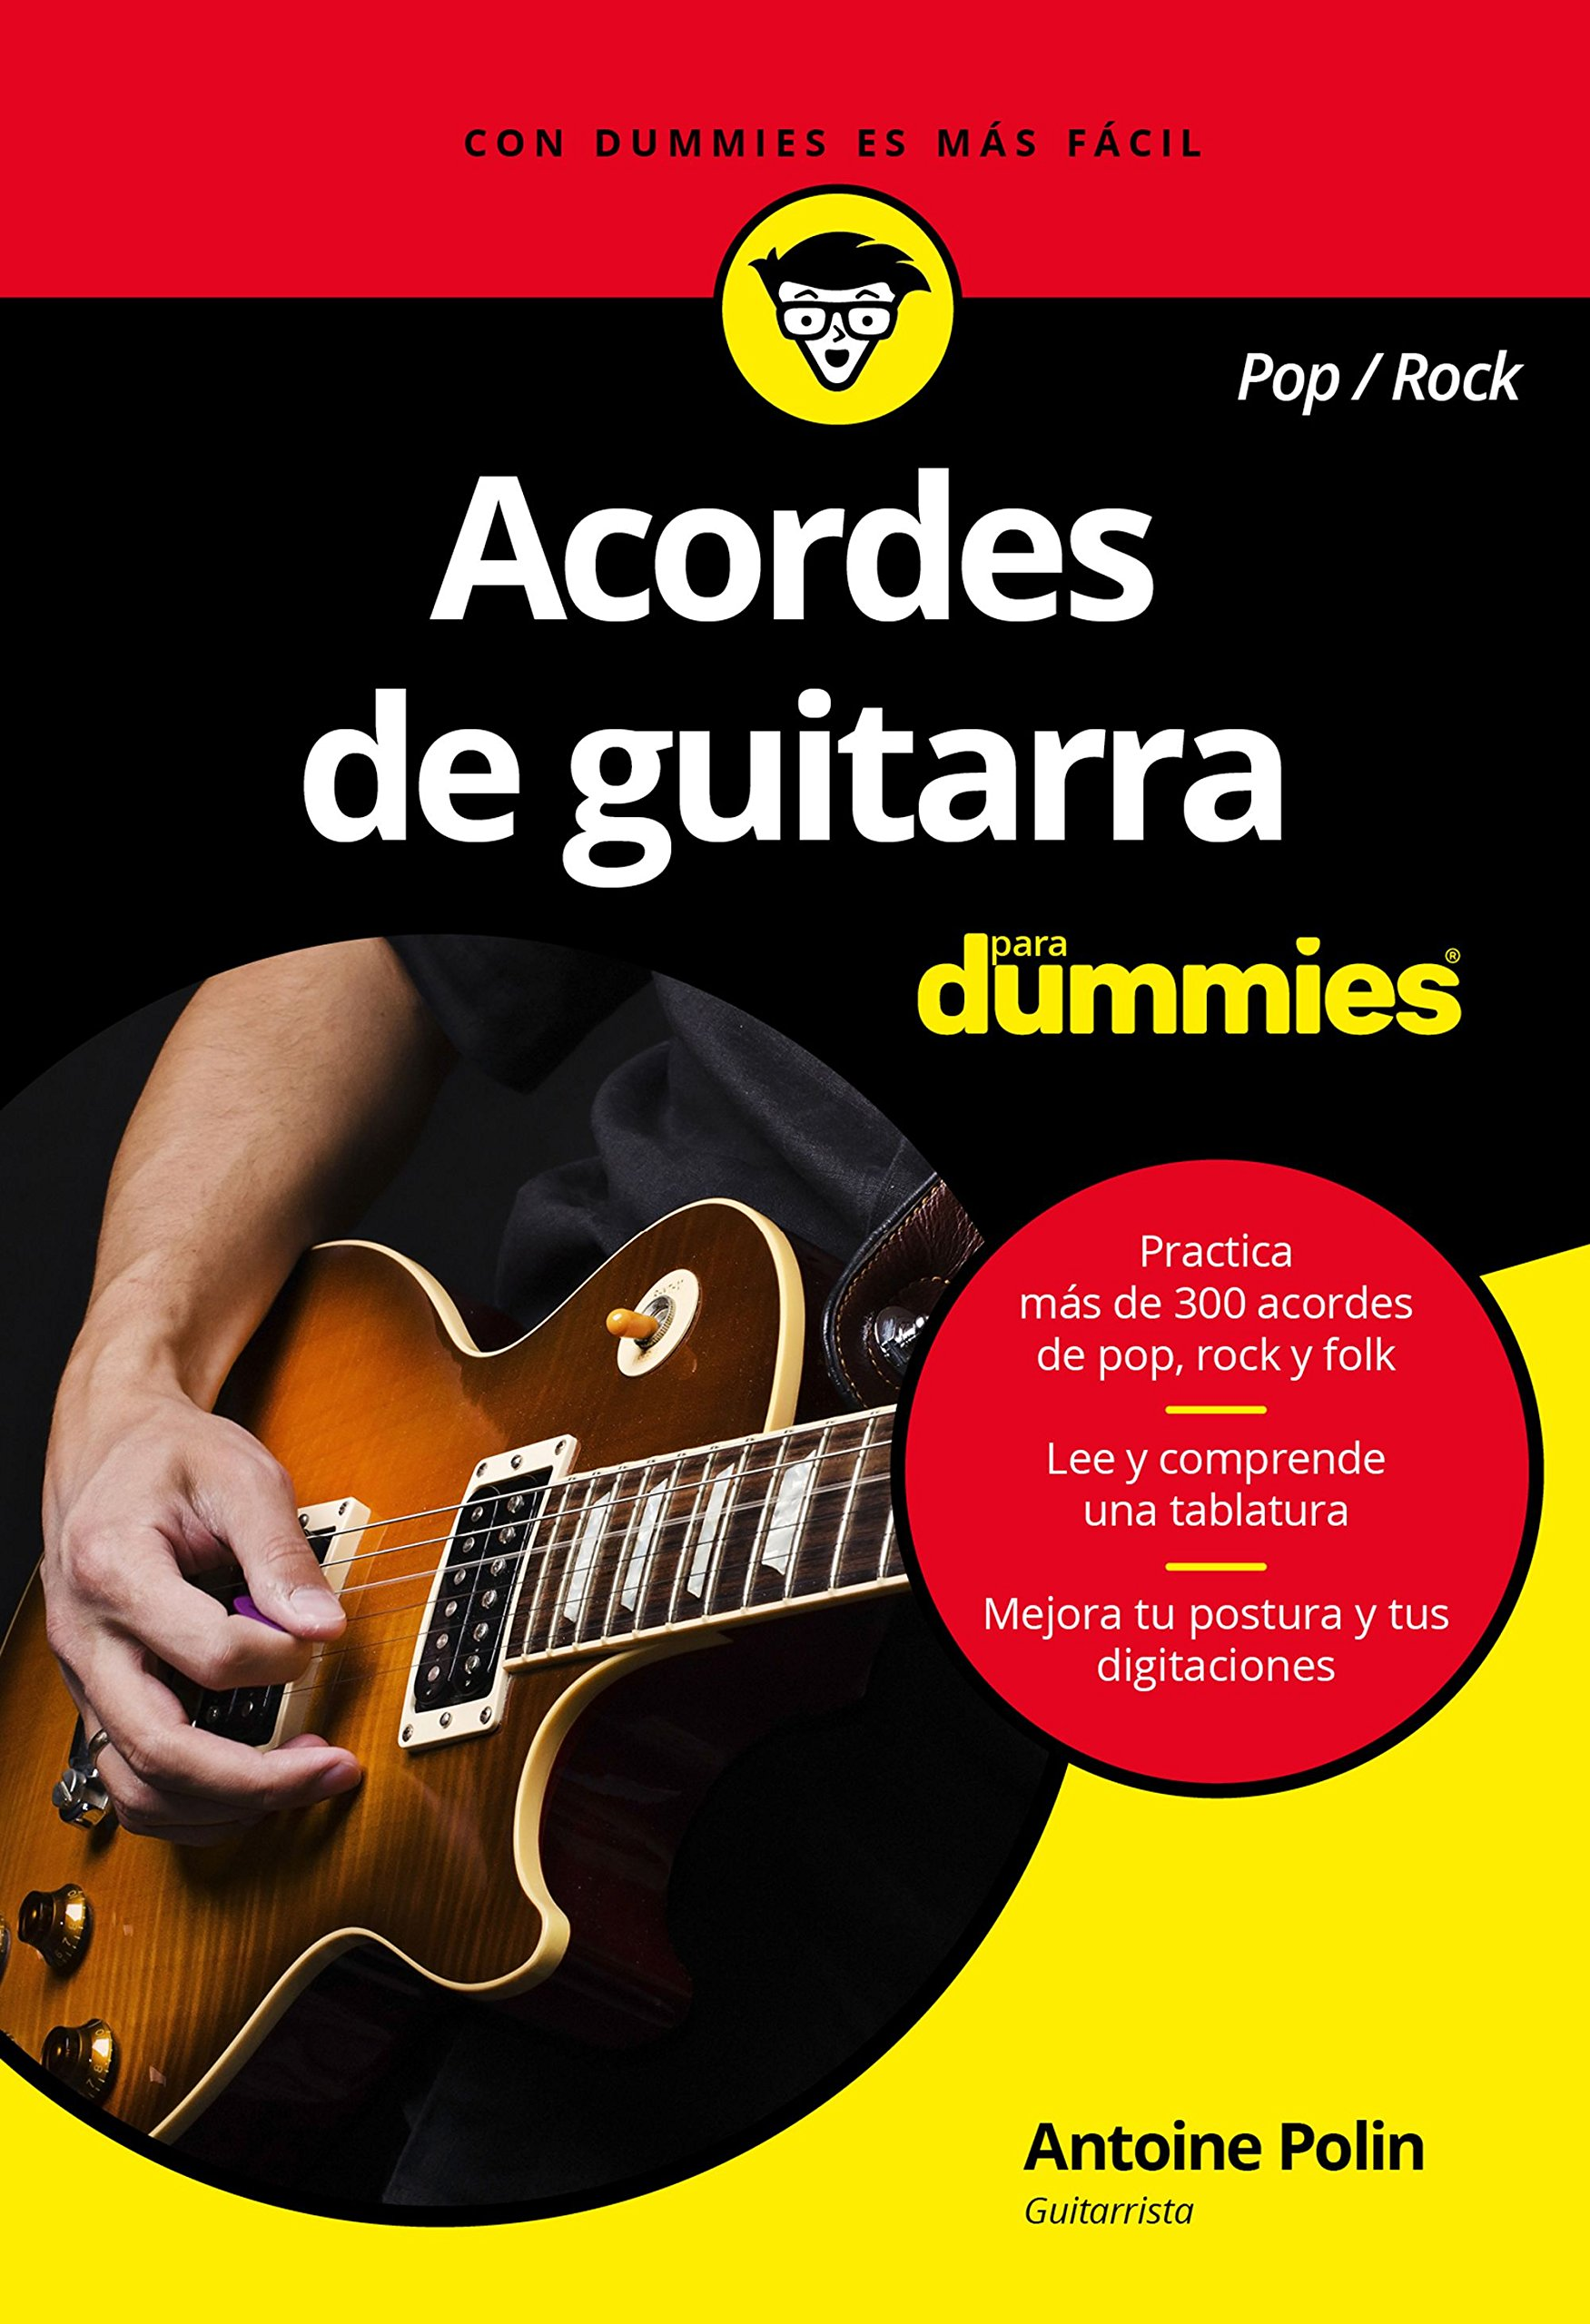 Acordes de guitarra pop/rock para Dummies (Spanish) Paperback – June 20, 2017